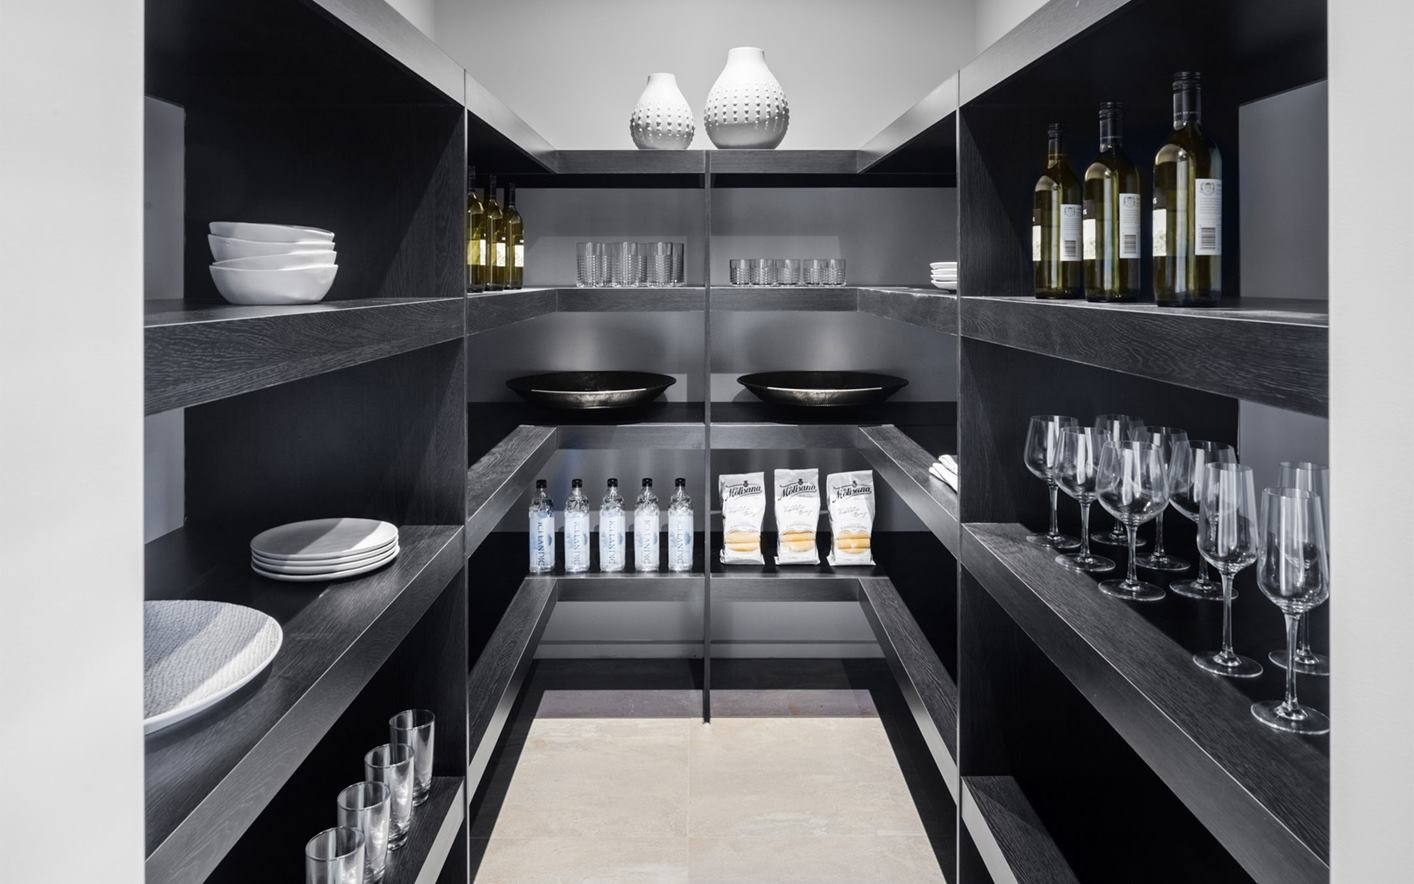 Cabinetry - Pantry - black open.jpg